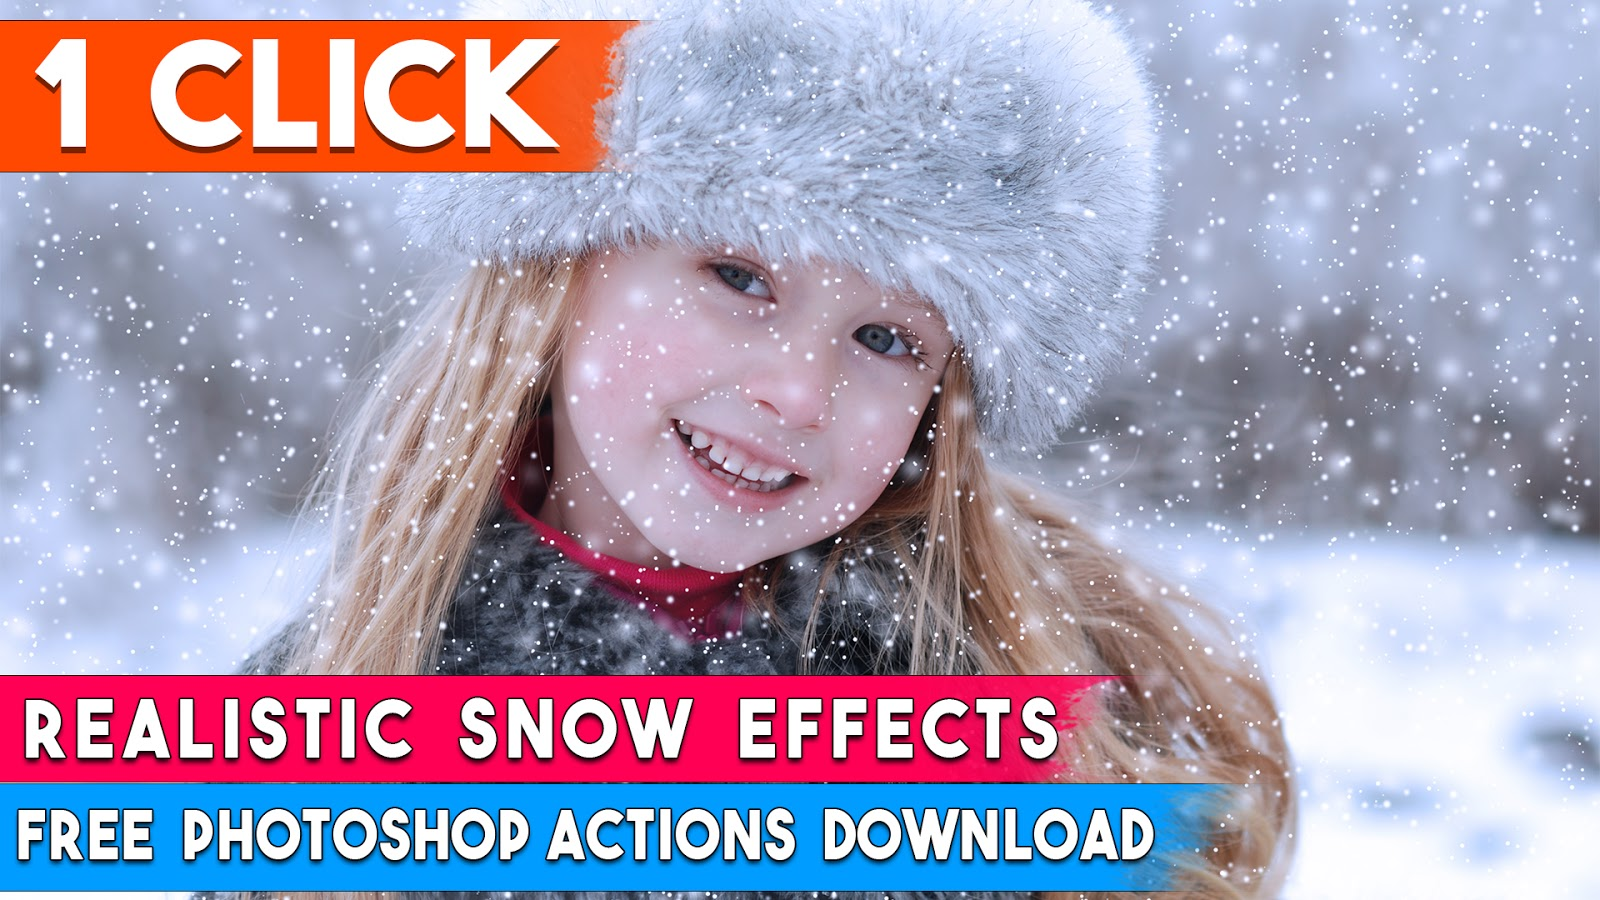 1-Click Automatic Realistic SNOW EFFECT Photoshop Actions